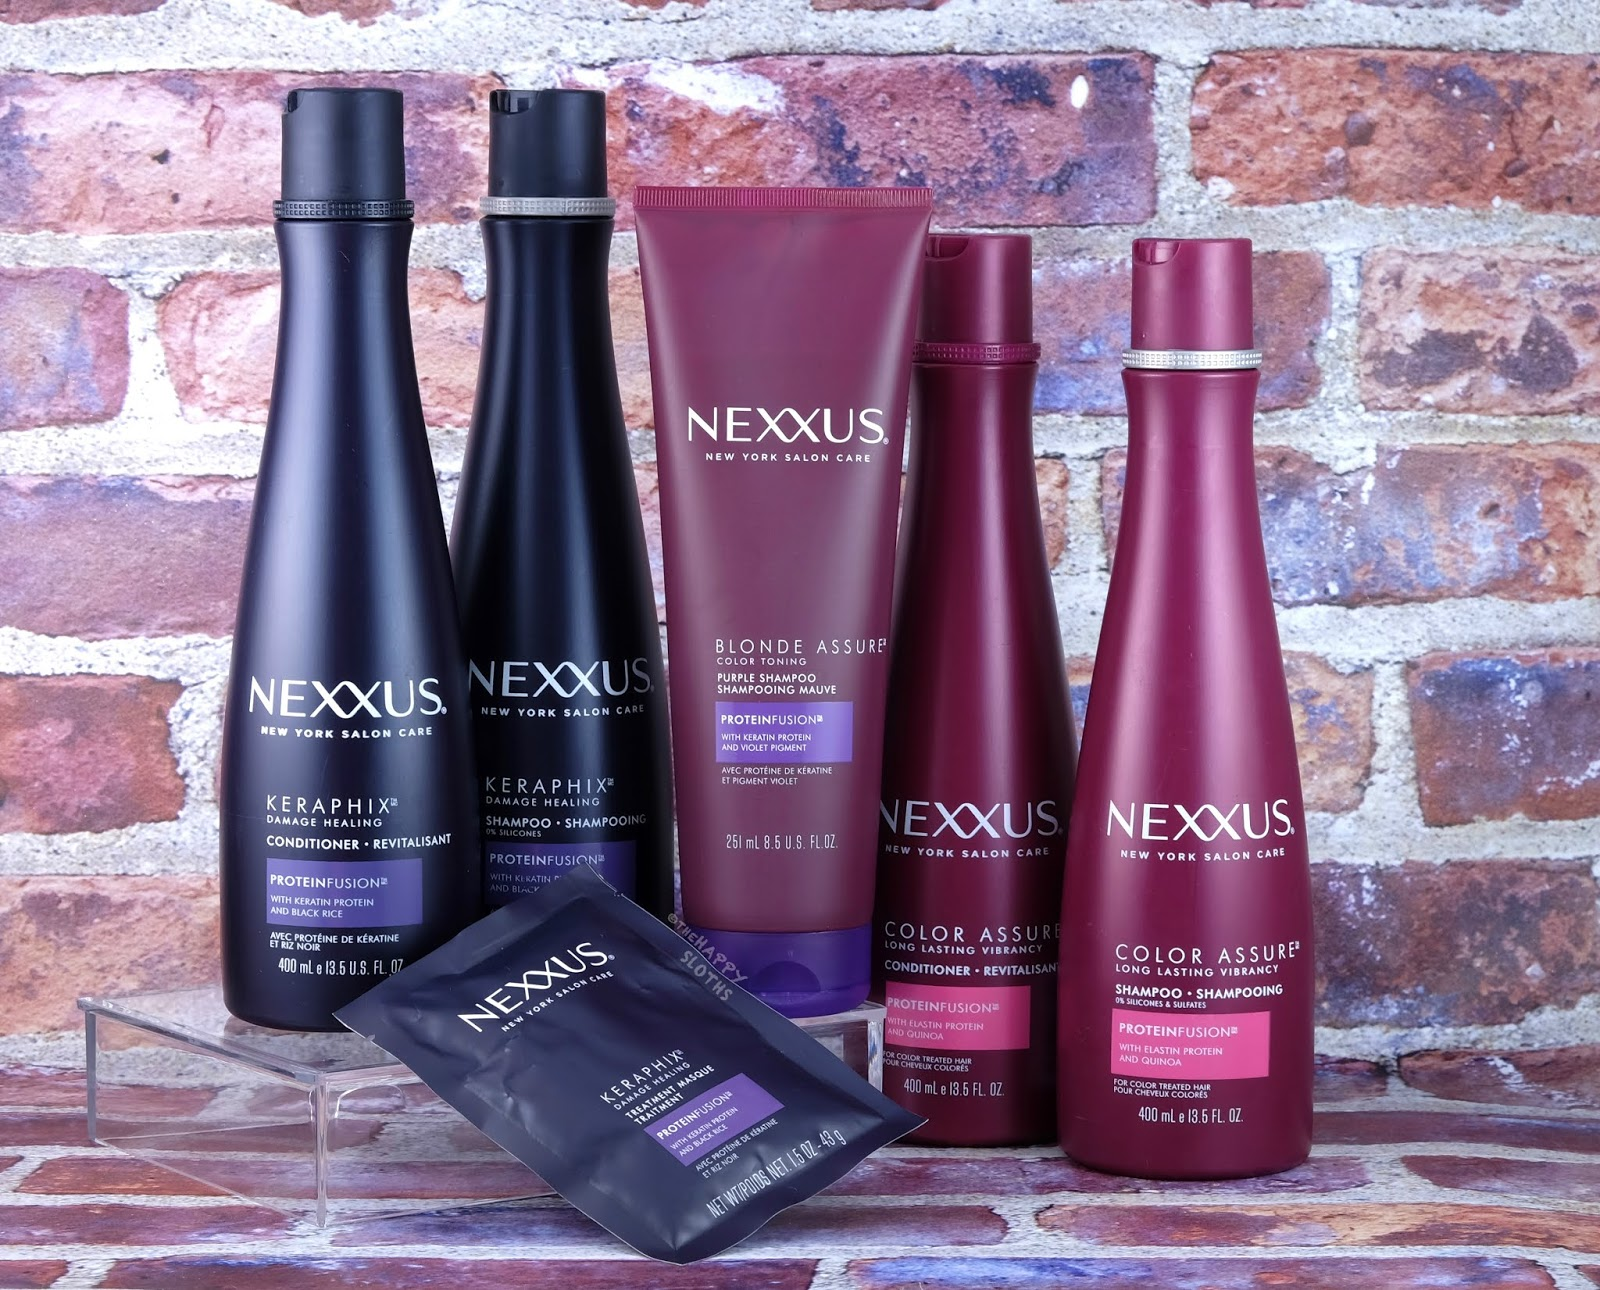 Nexxus | Keraphix Damage Healing and Color Assure Collection